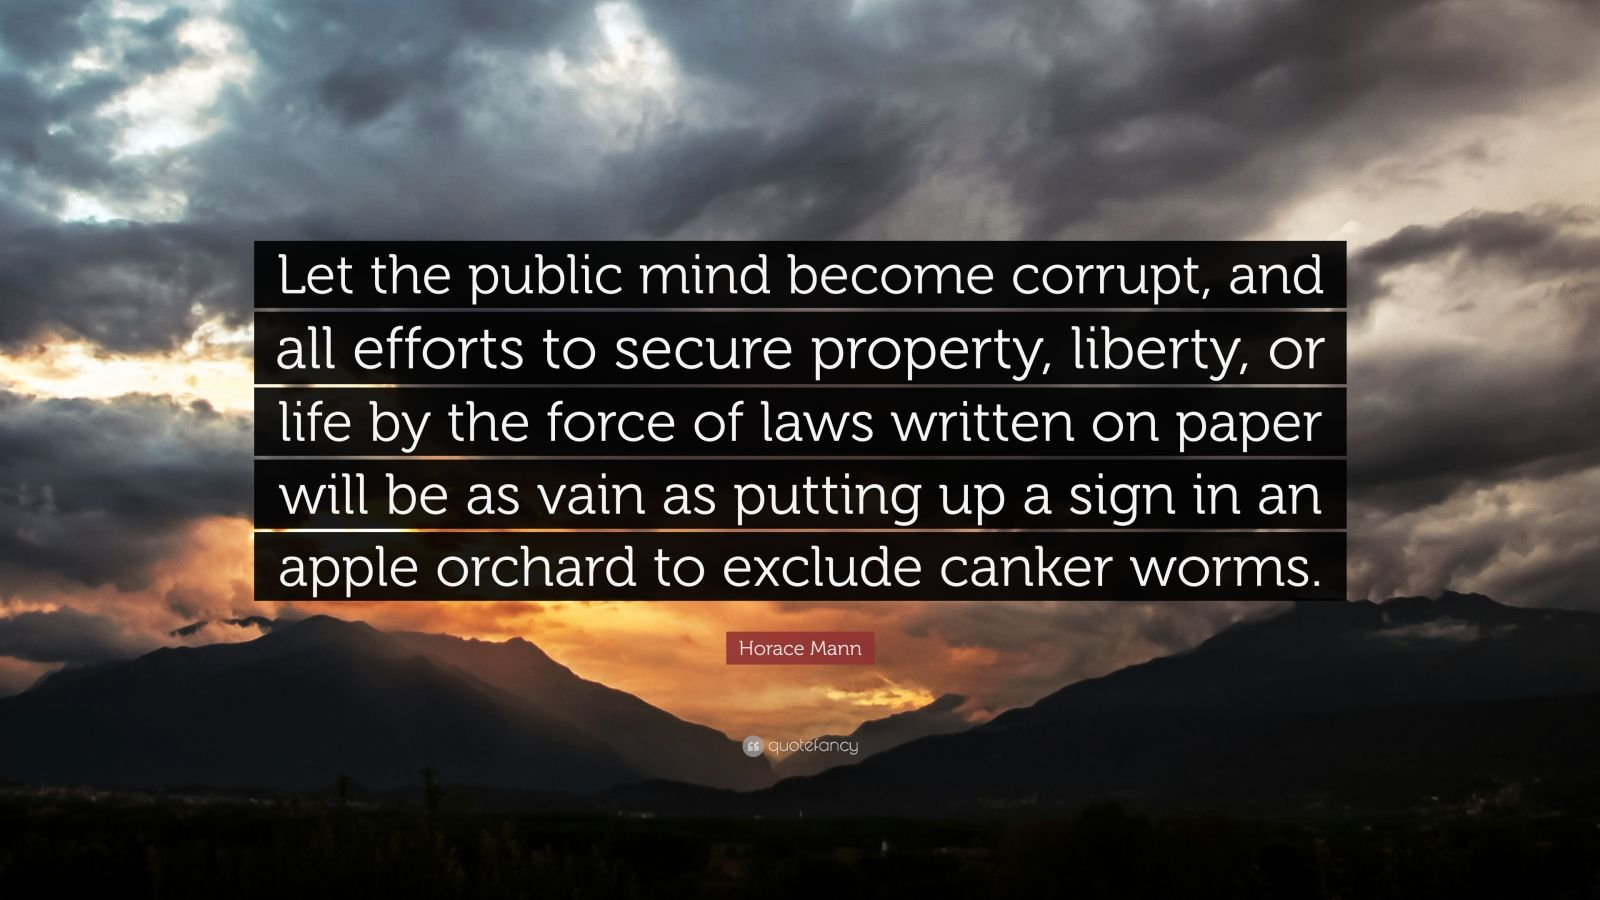 "Horace Mann Quote: ""Let the public mind become corrupt, and all efforts to secure property, liberty, or life by the force of laws written on paper will be as vain as putting up a sign in an apple orchard to exclude canker worms."""